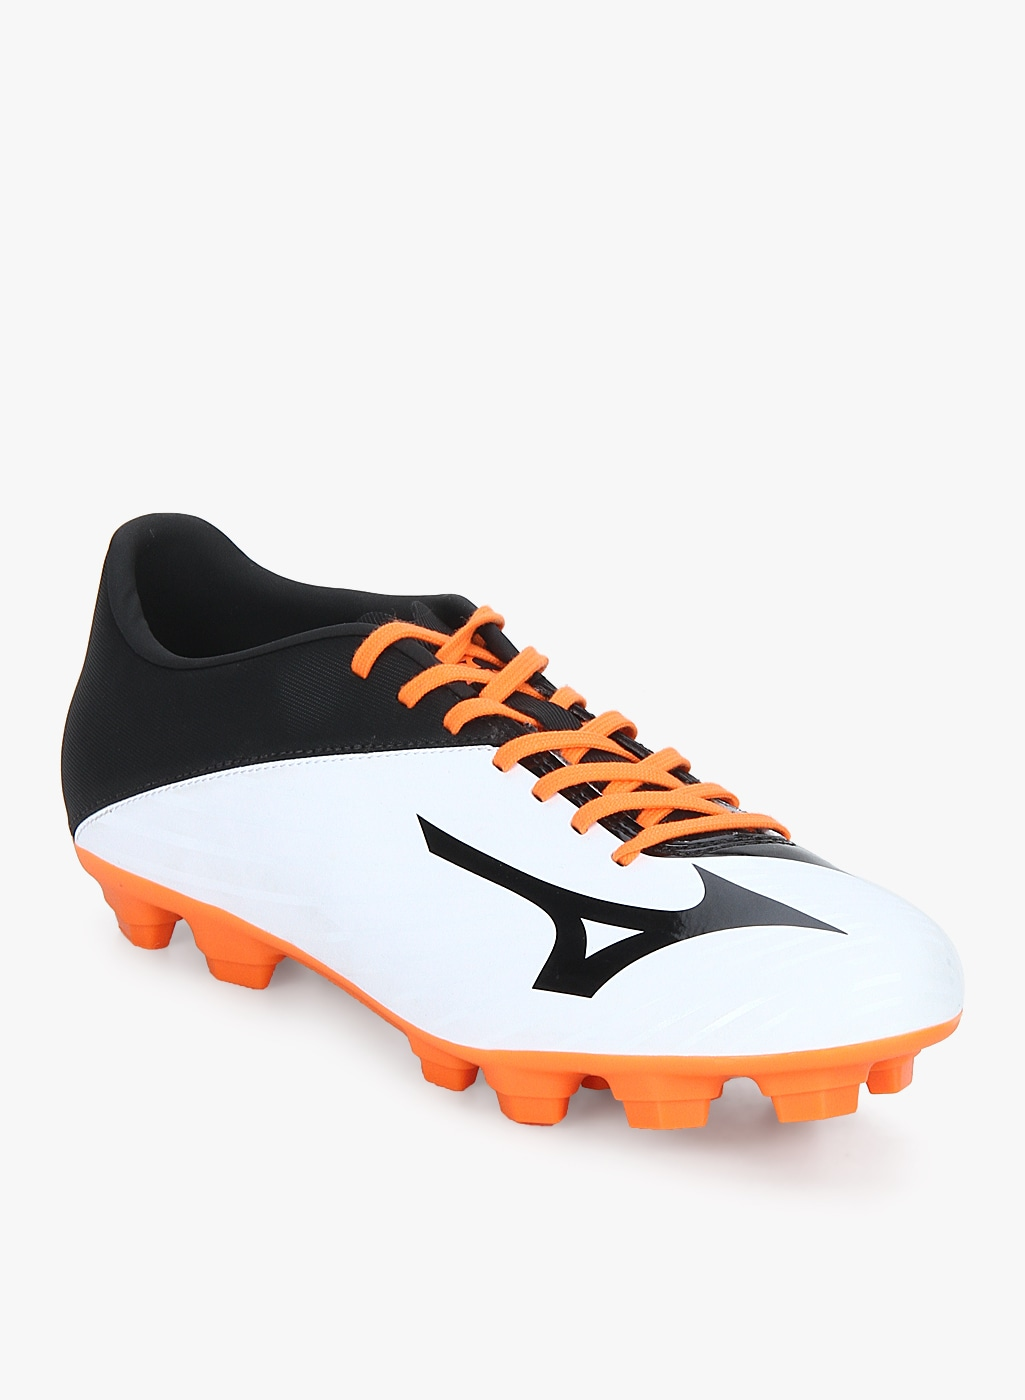 Football Shoes - Buy Football Studs Online for Men   Women in India 42c4b08bd45c